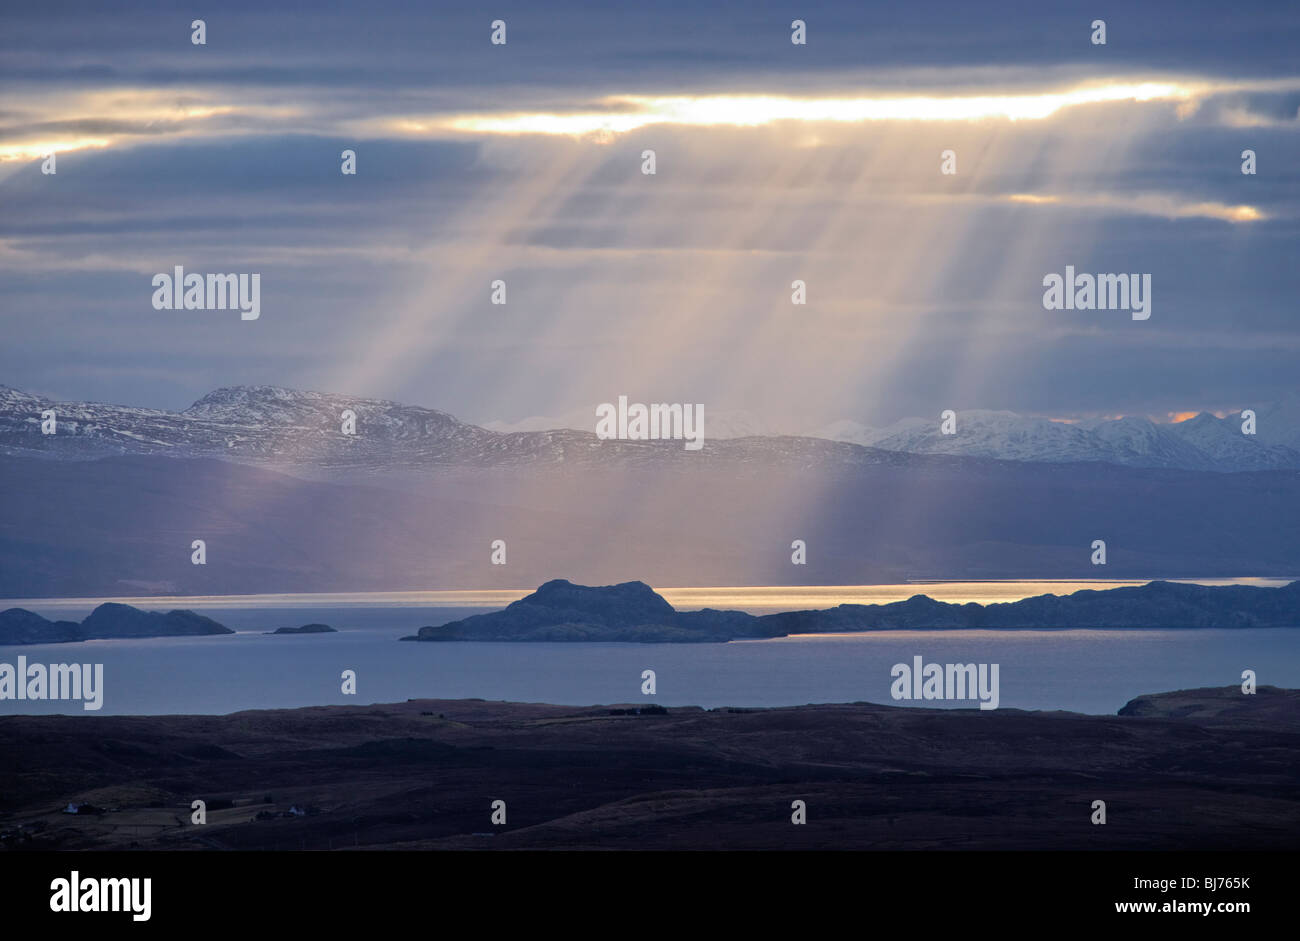 Sunbeam over the Isle of Raasay and The Minch. Seen from Trotternish, Isle of Skye, Scotland, UK. Stock Photo